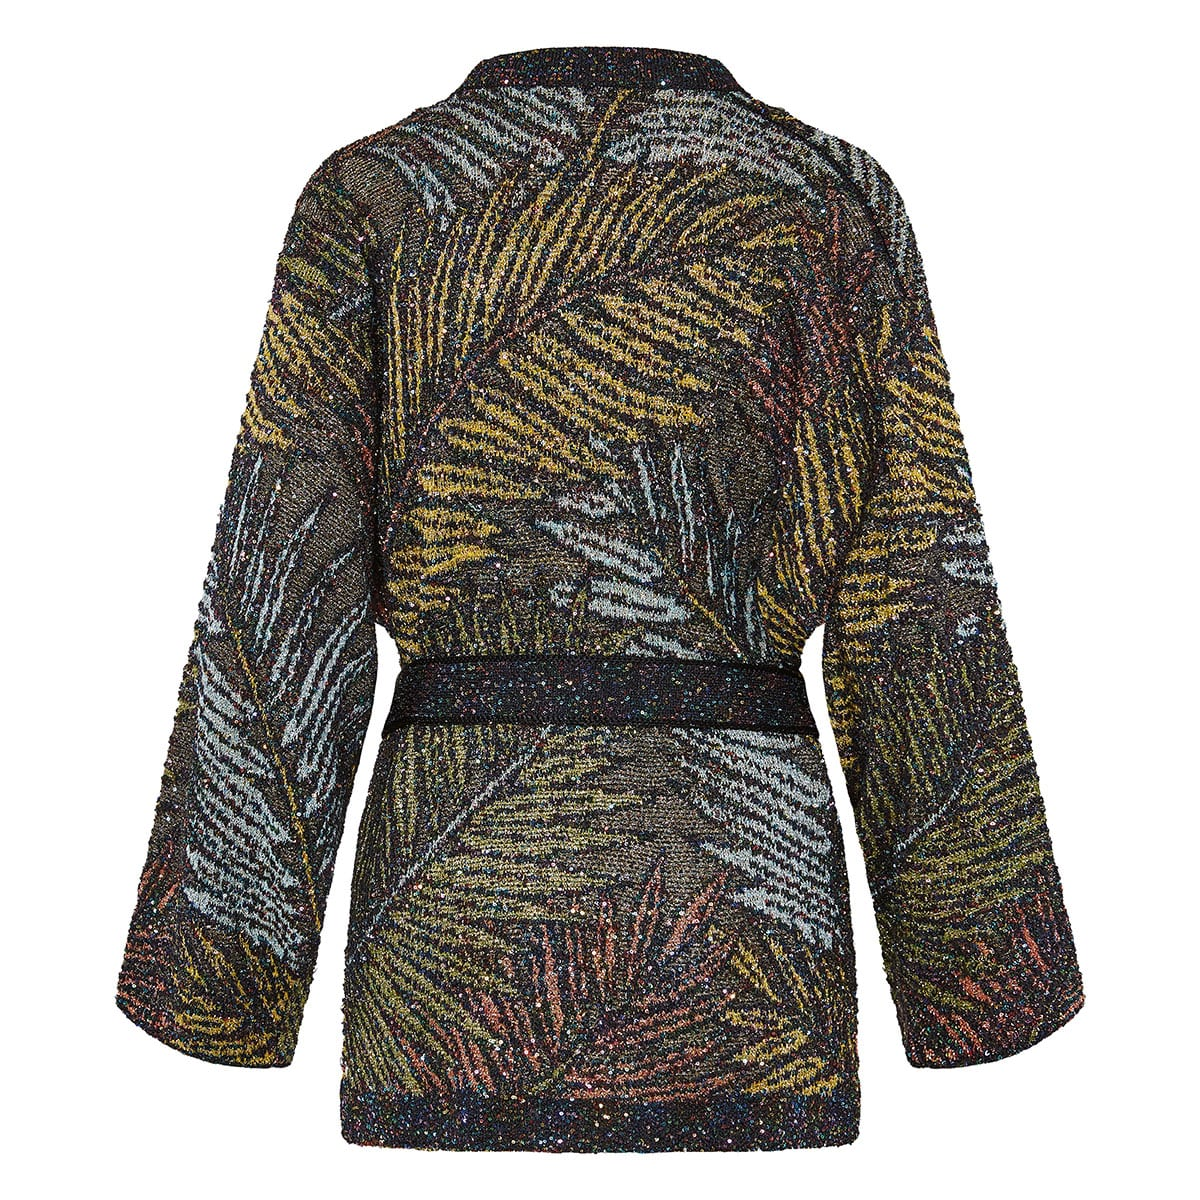 Sequin printed lurex cardigan